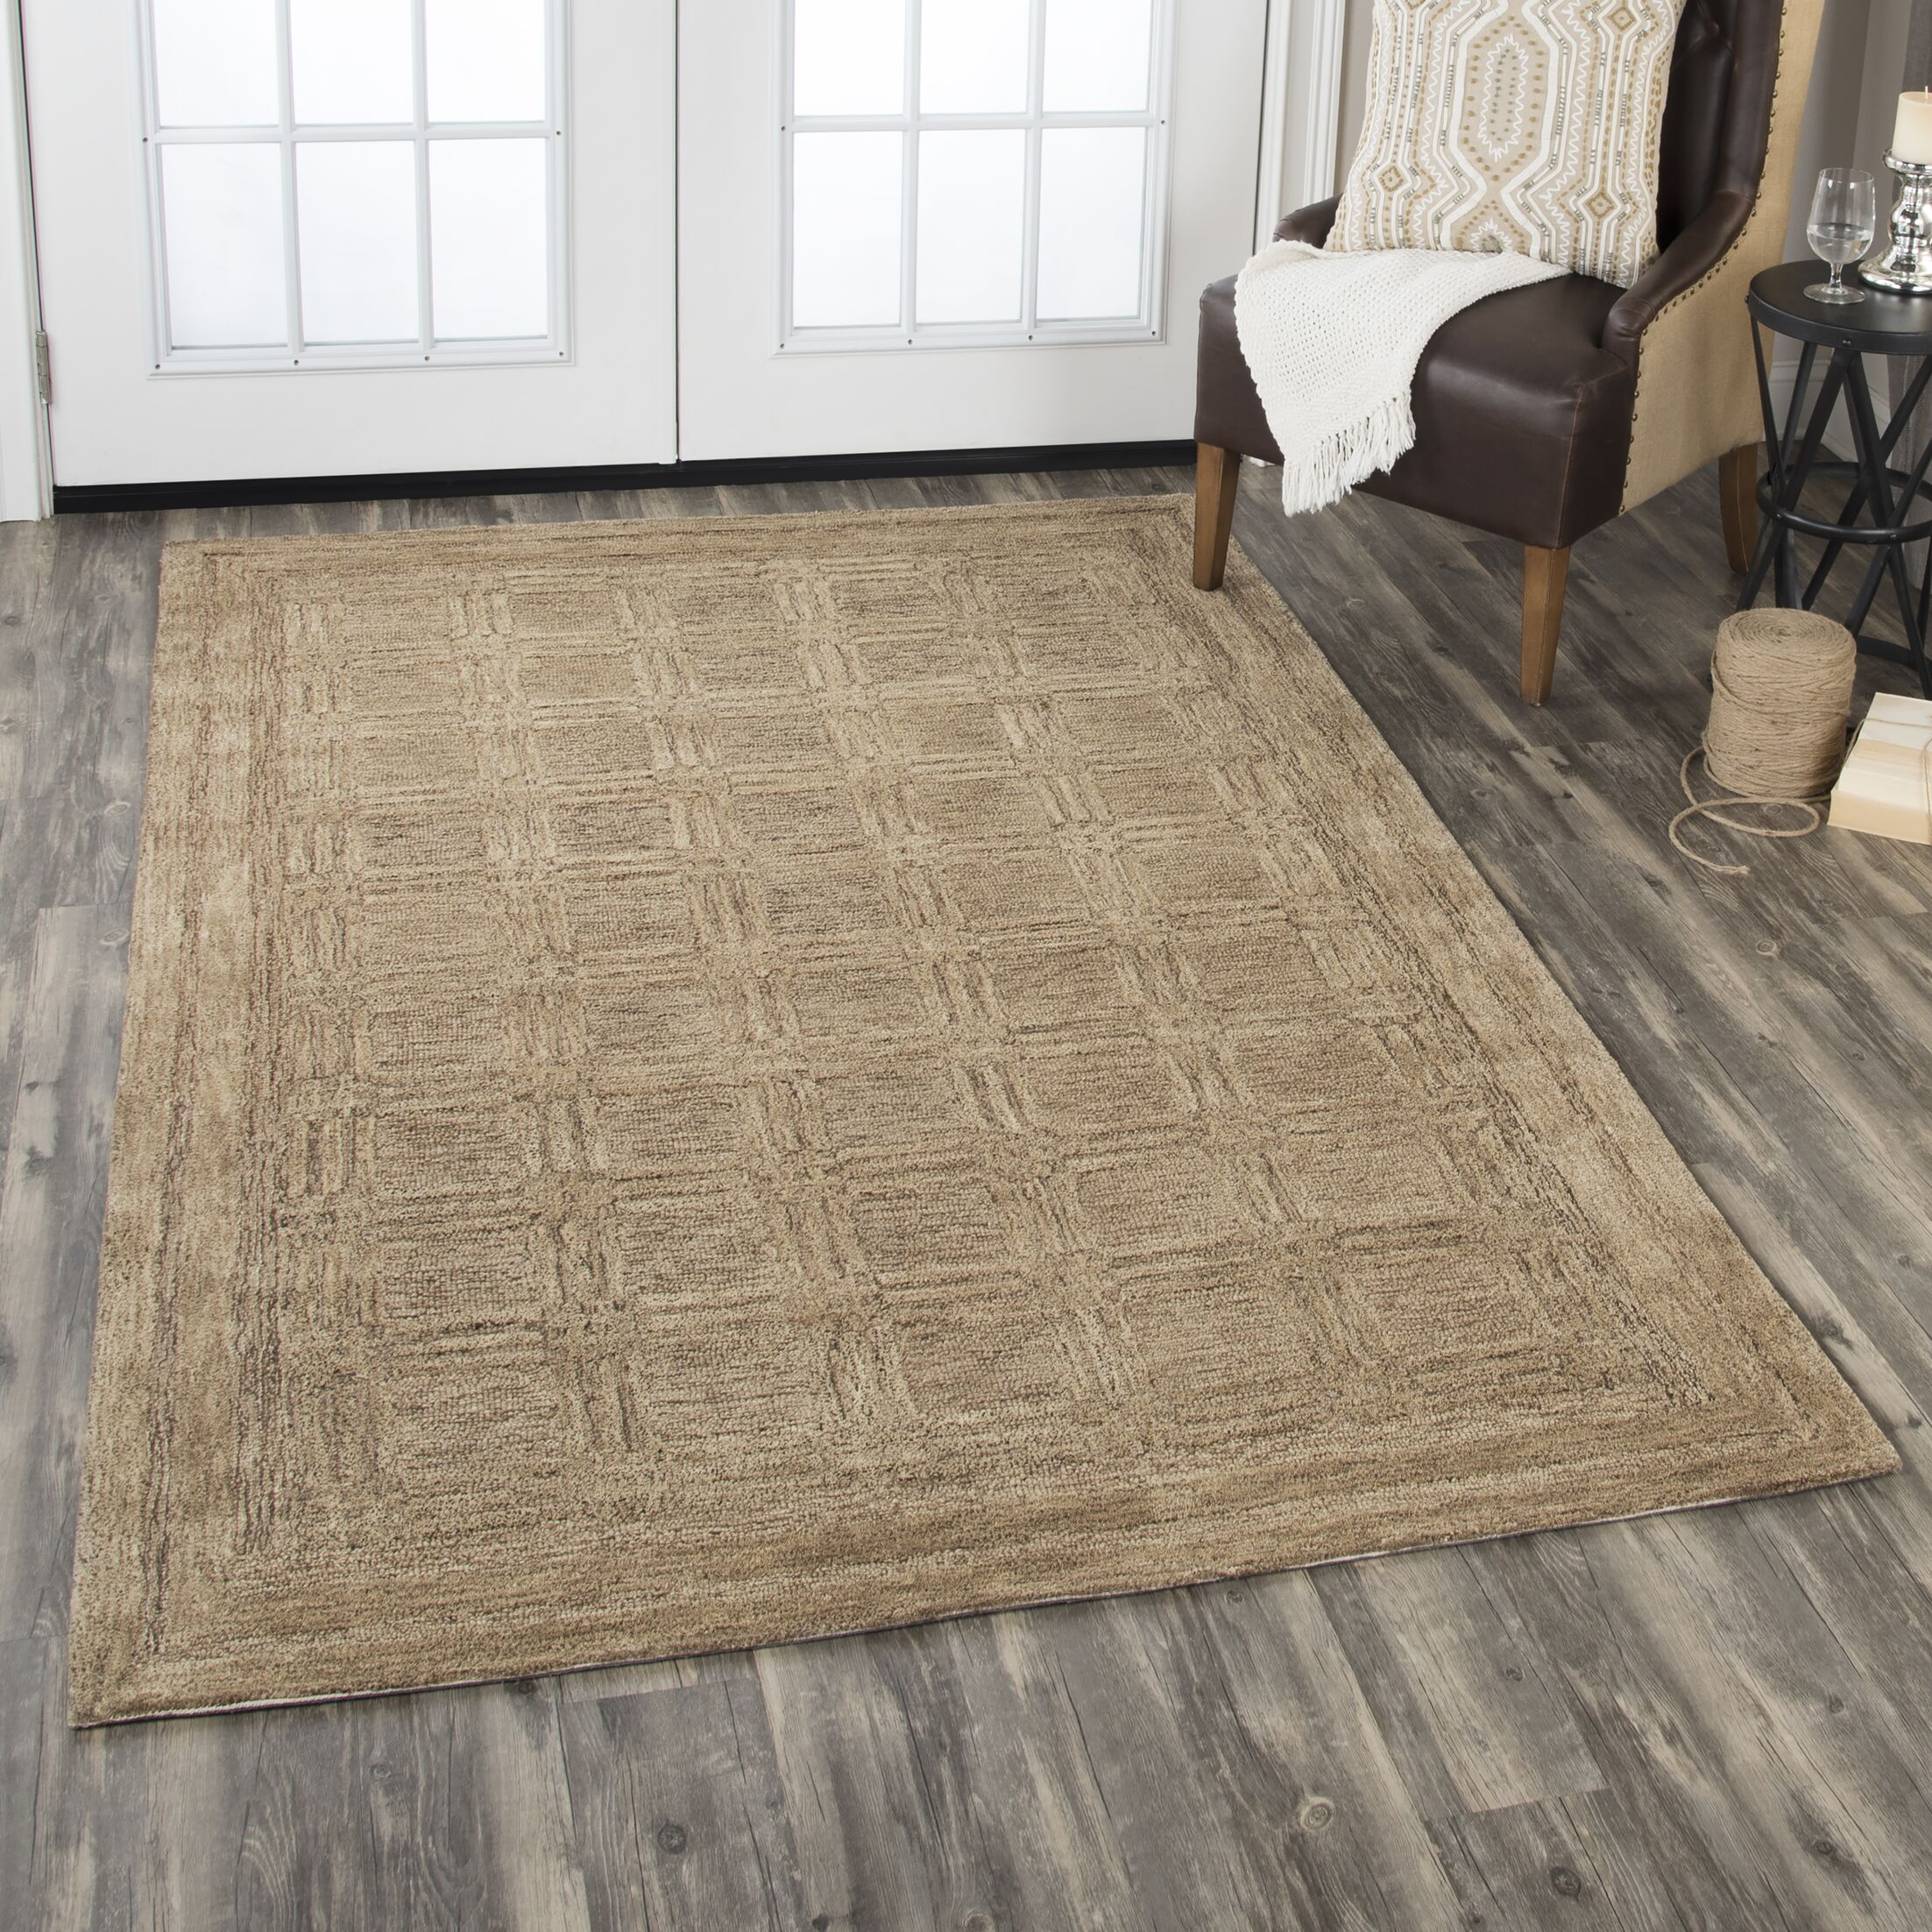 Etheredge Hand-Tufted Wool Brown Area Rug Rug Size: Rectangle 8' x 10'